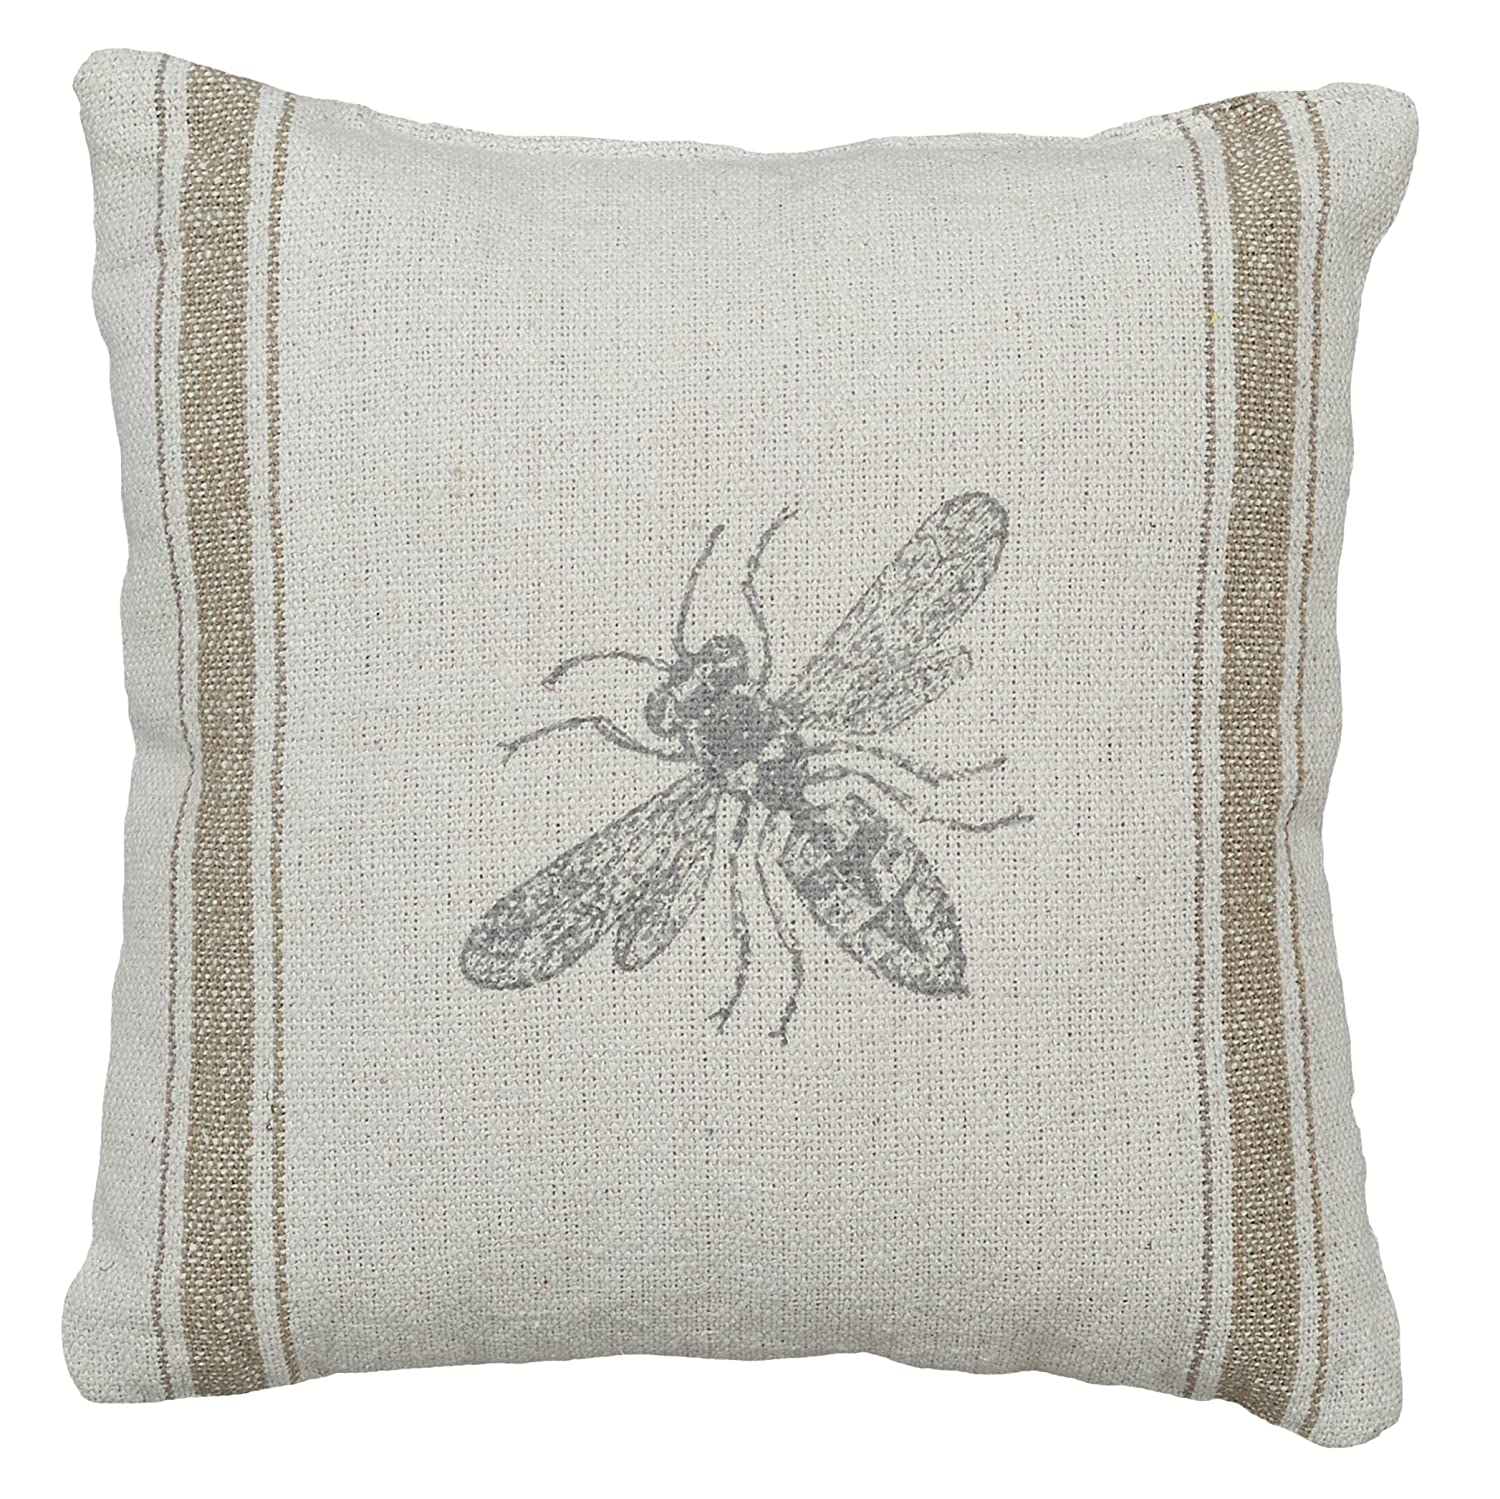 Primitives by Kathy 3-Stripe Bumblebee Accent Pillow, 10 x 10 10 x 10 21665